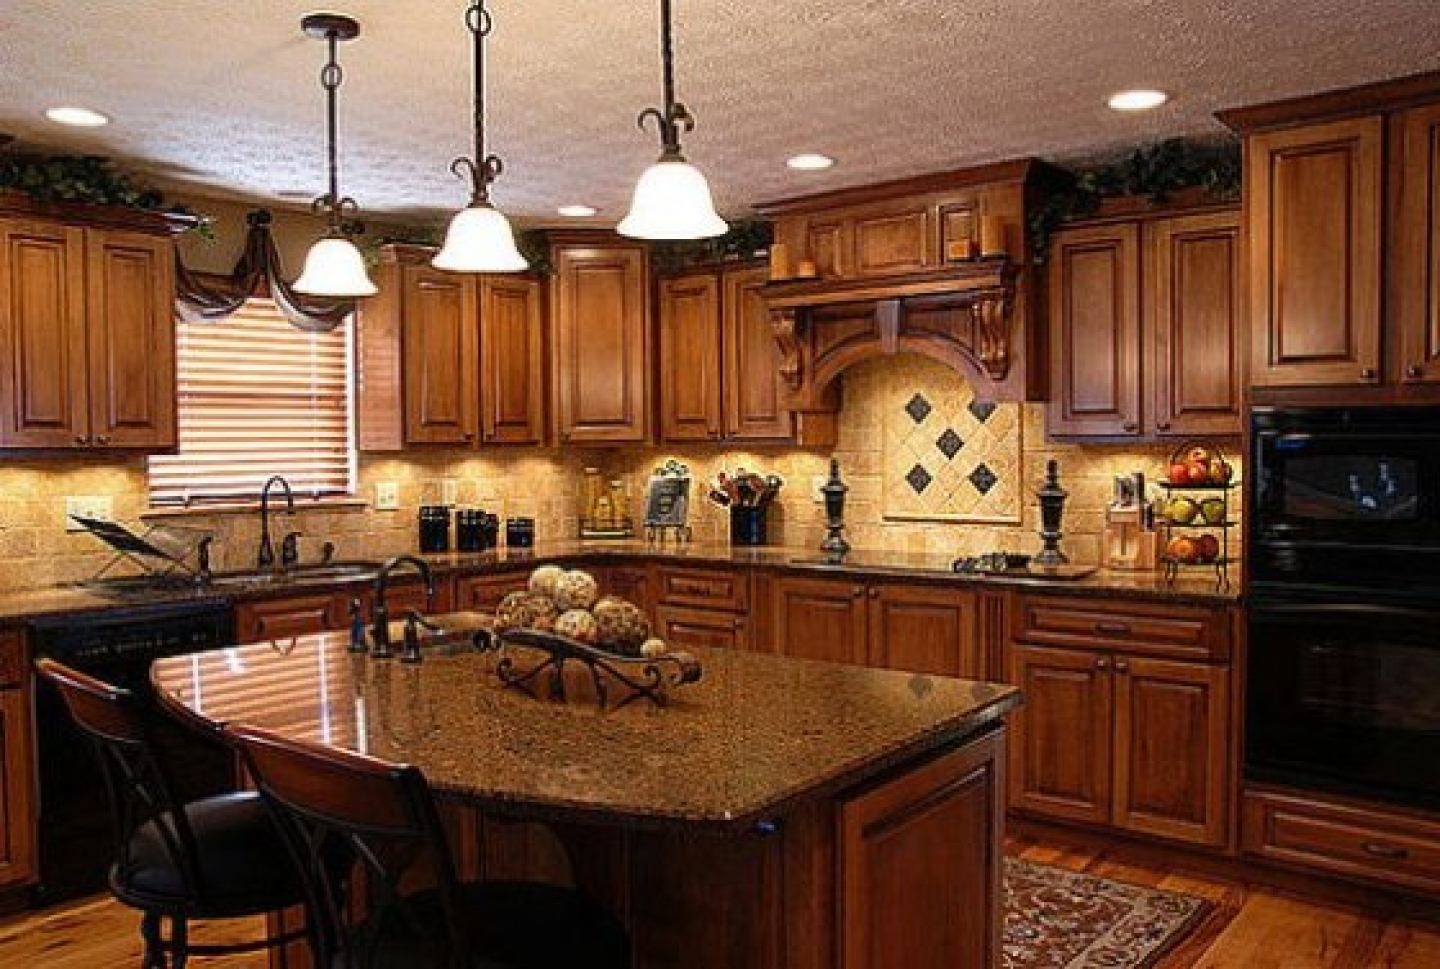 Kitchen Cabinets Lowest Price The Lowest Prices For Cabinets In Wilkes Barre